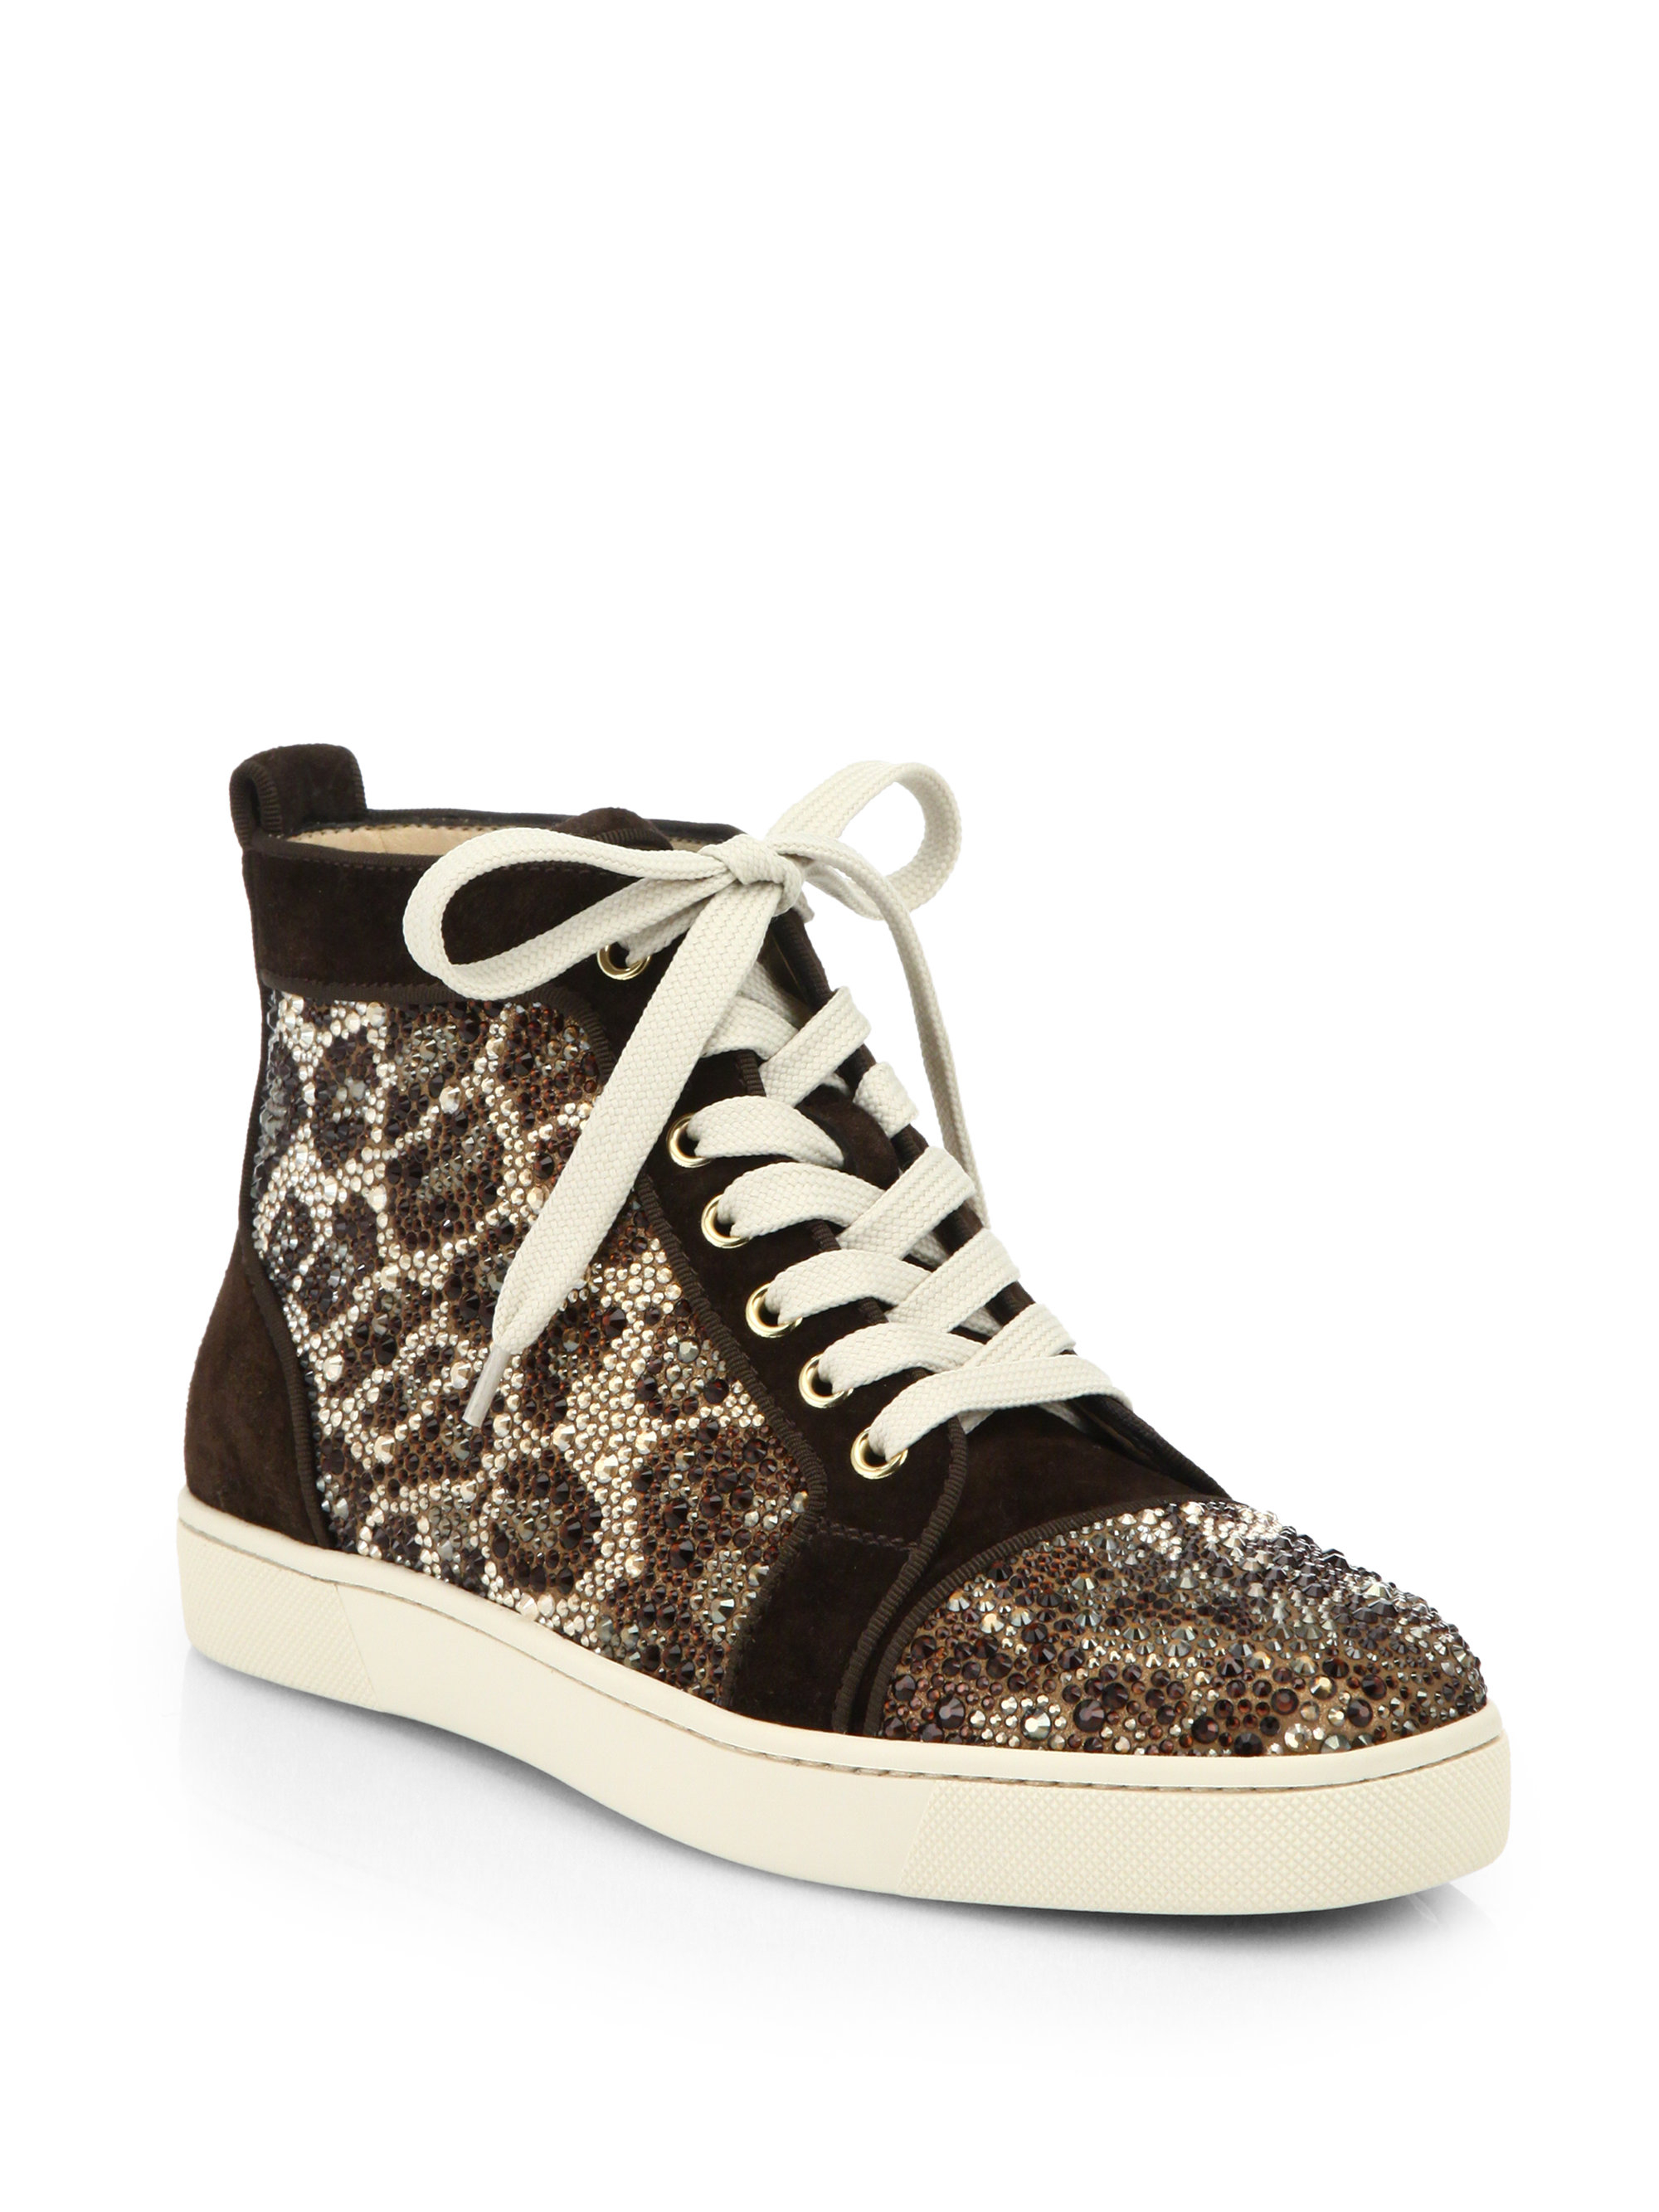 aa9dbc2c1ad Christian louboutin Crystal Leopard Pattern Suede High-top Sneakers in  Brown